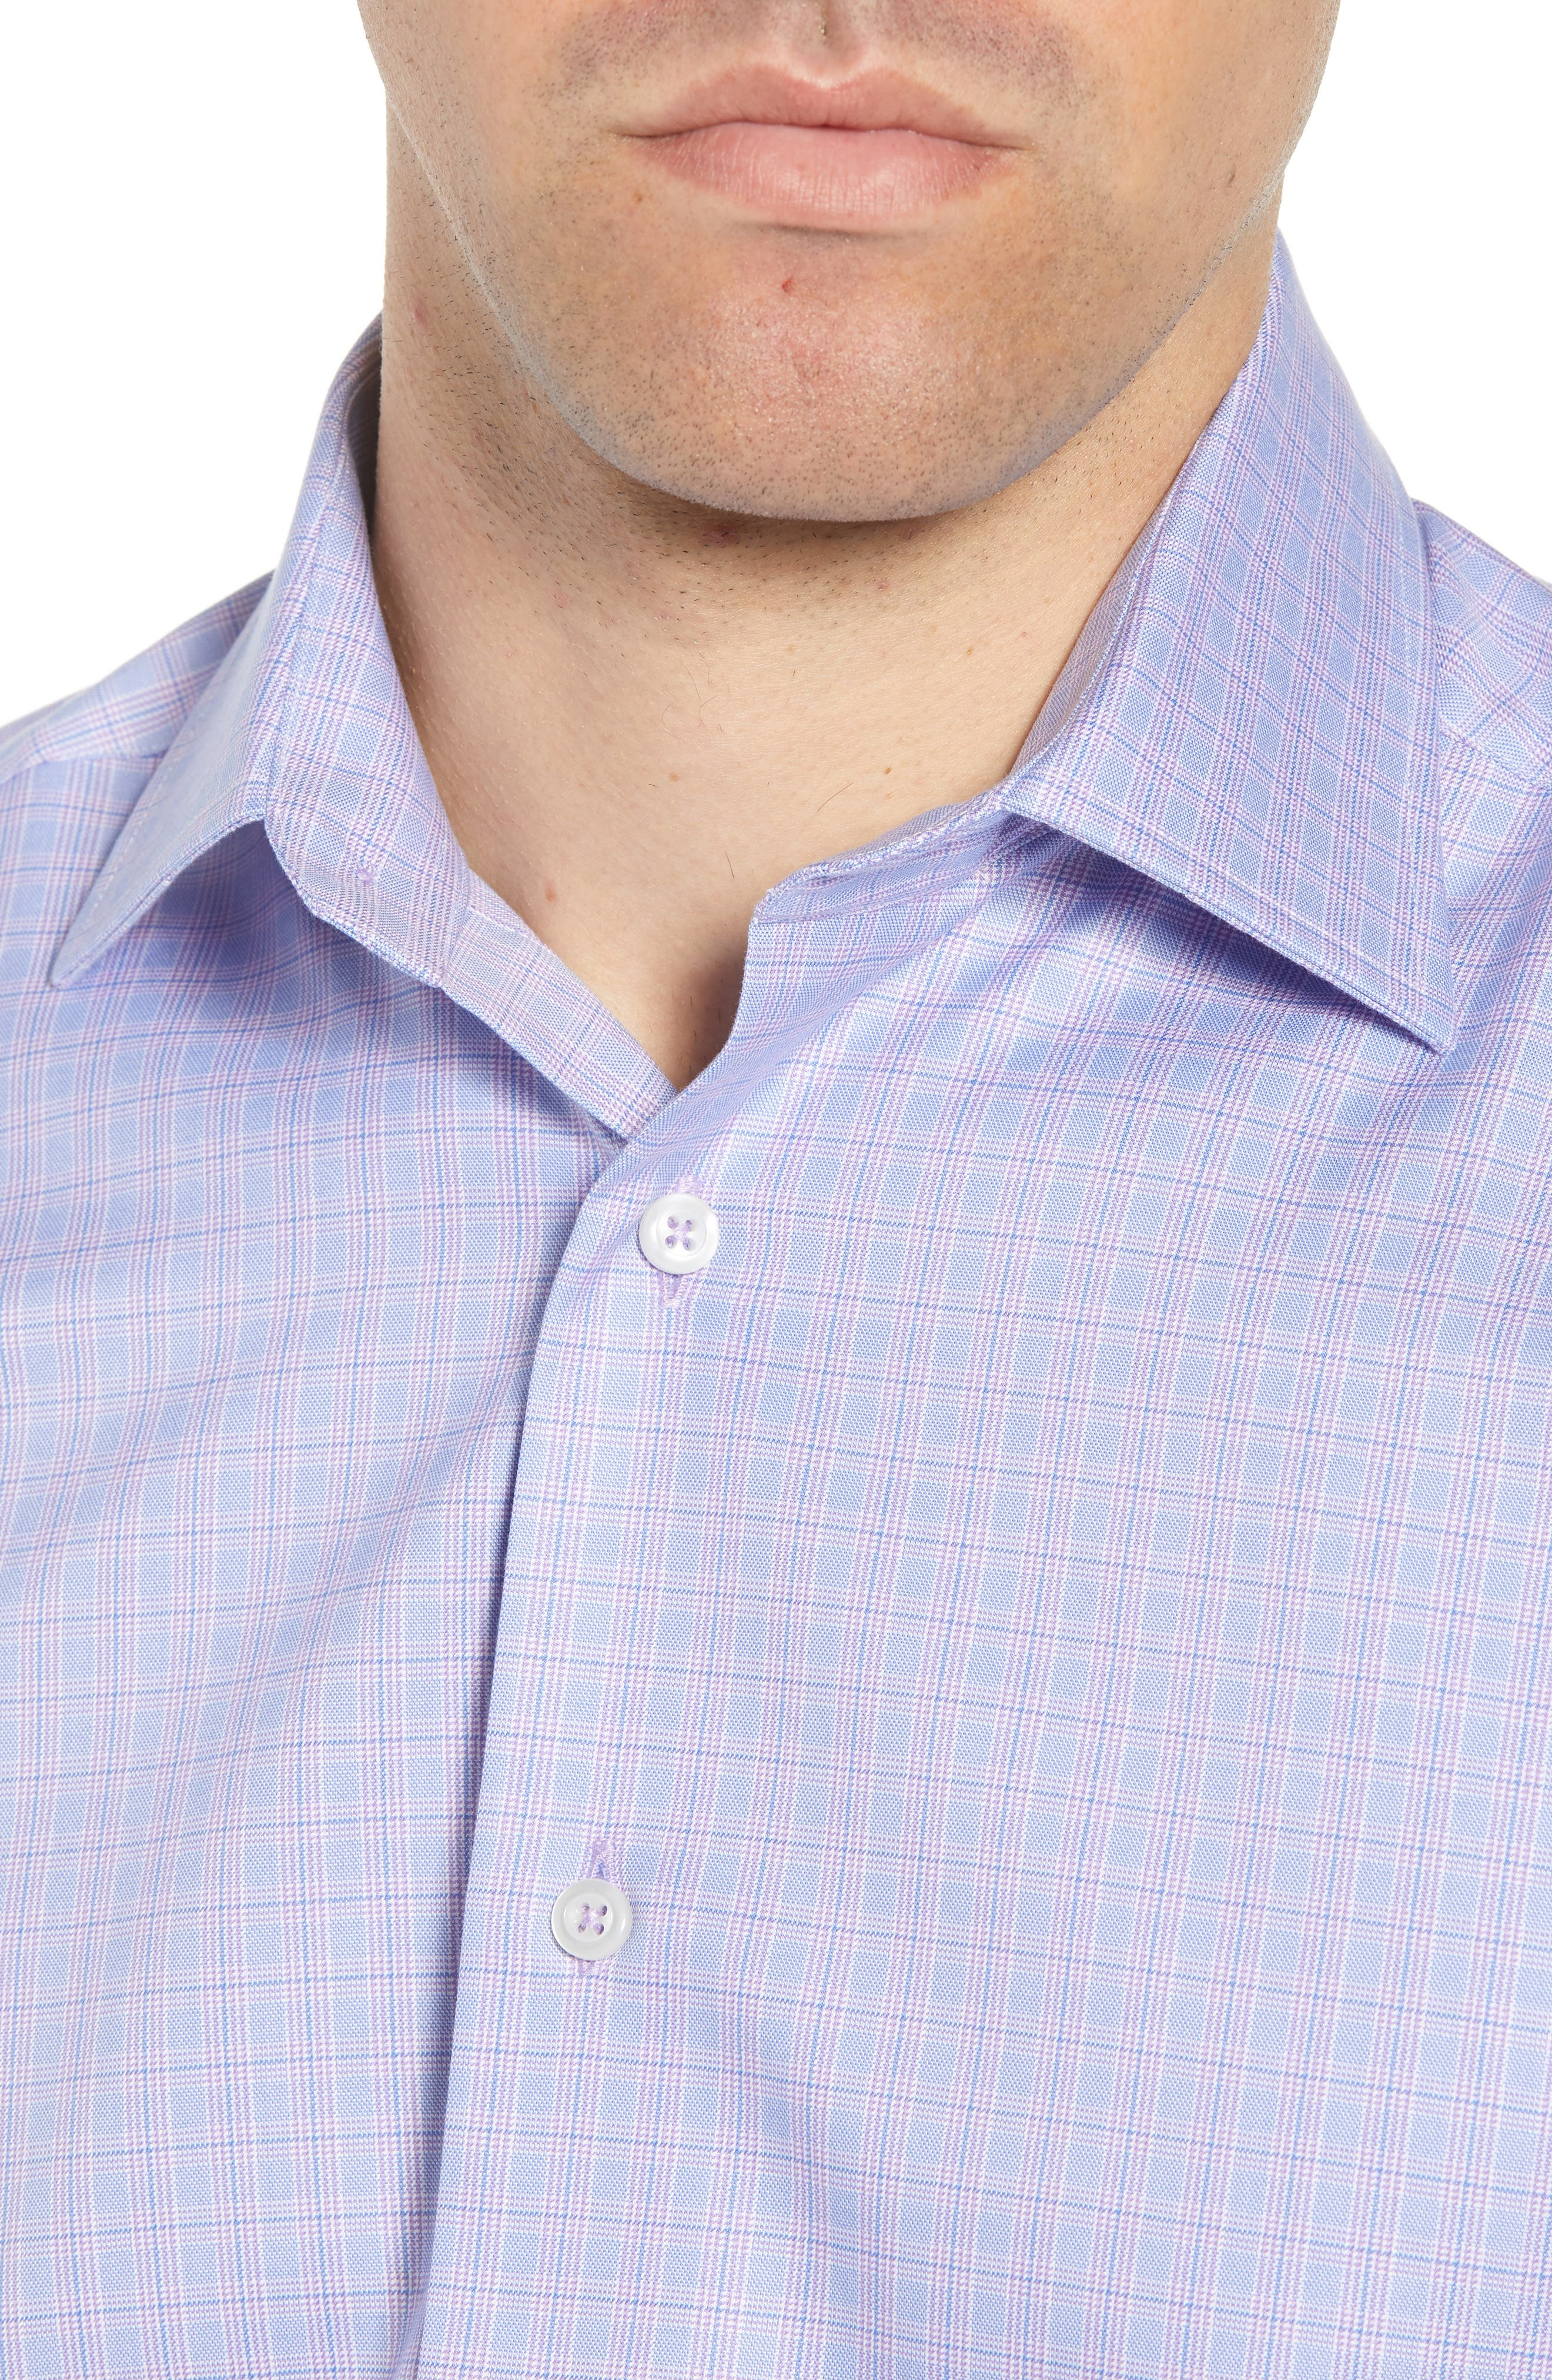 Trim Fit Plaid Dress Shirt,                             Alternate thumbnail 2, color,                             LILAC